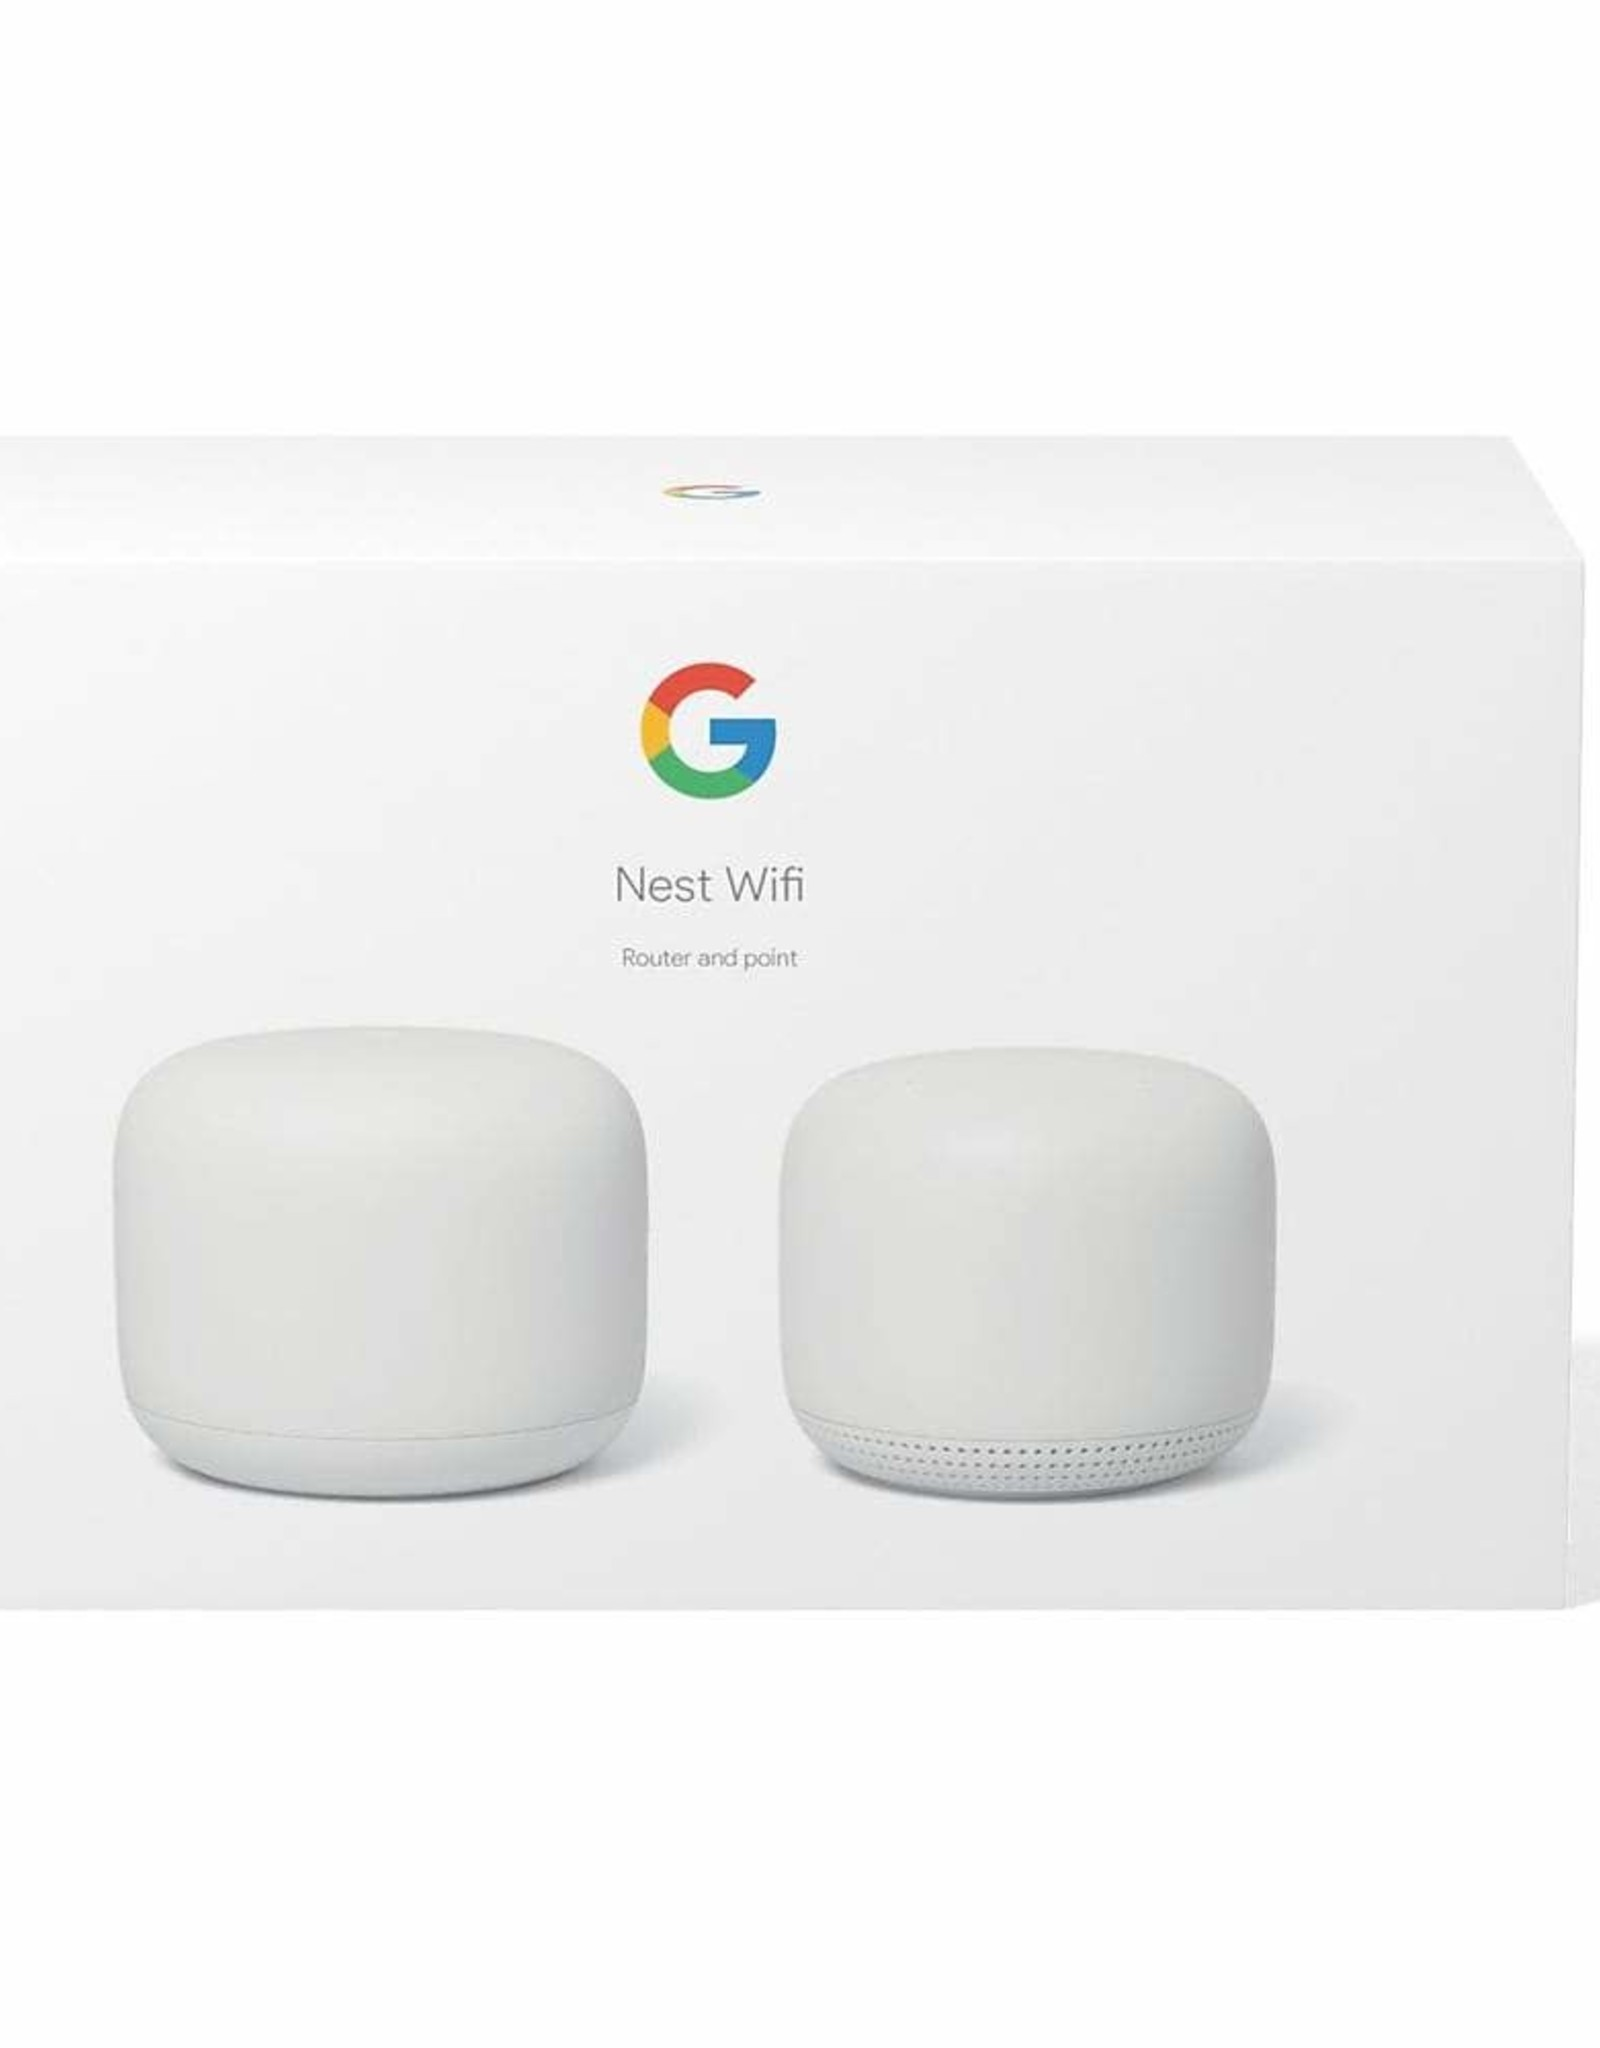 Google Google Nest Wifi Router with Point - 2 Pack GA00822-CA